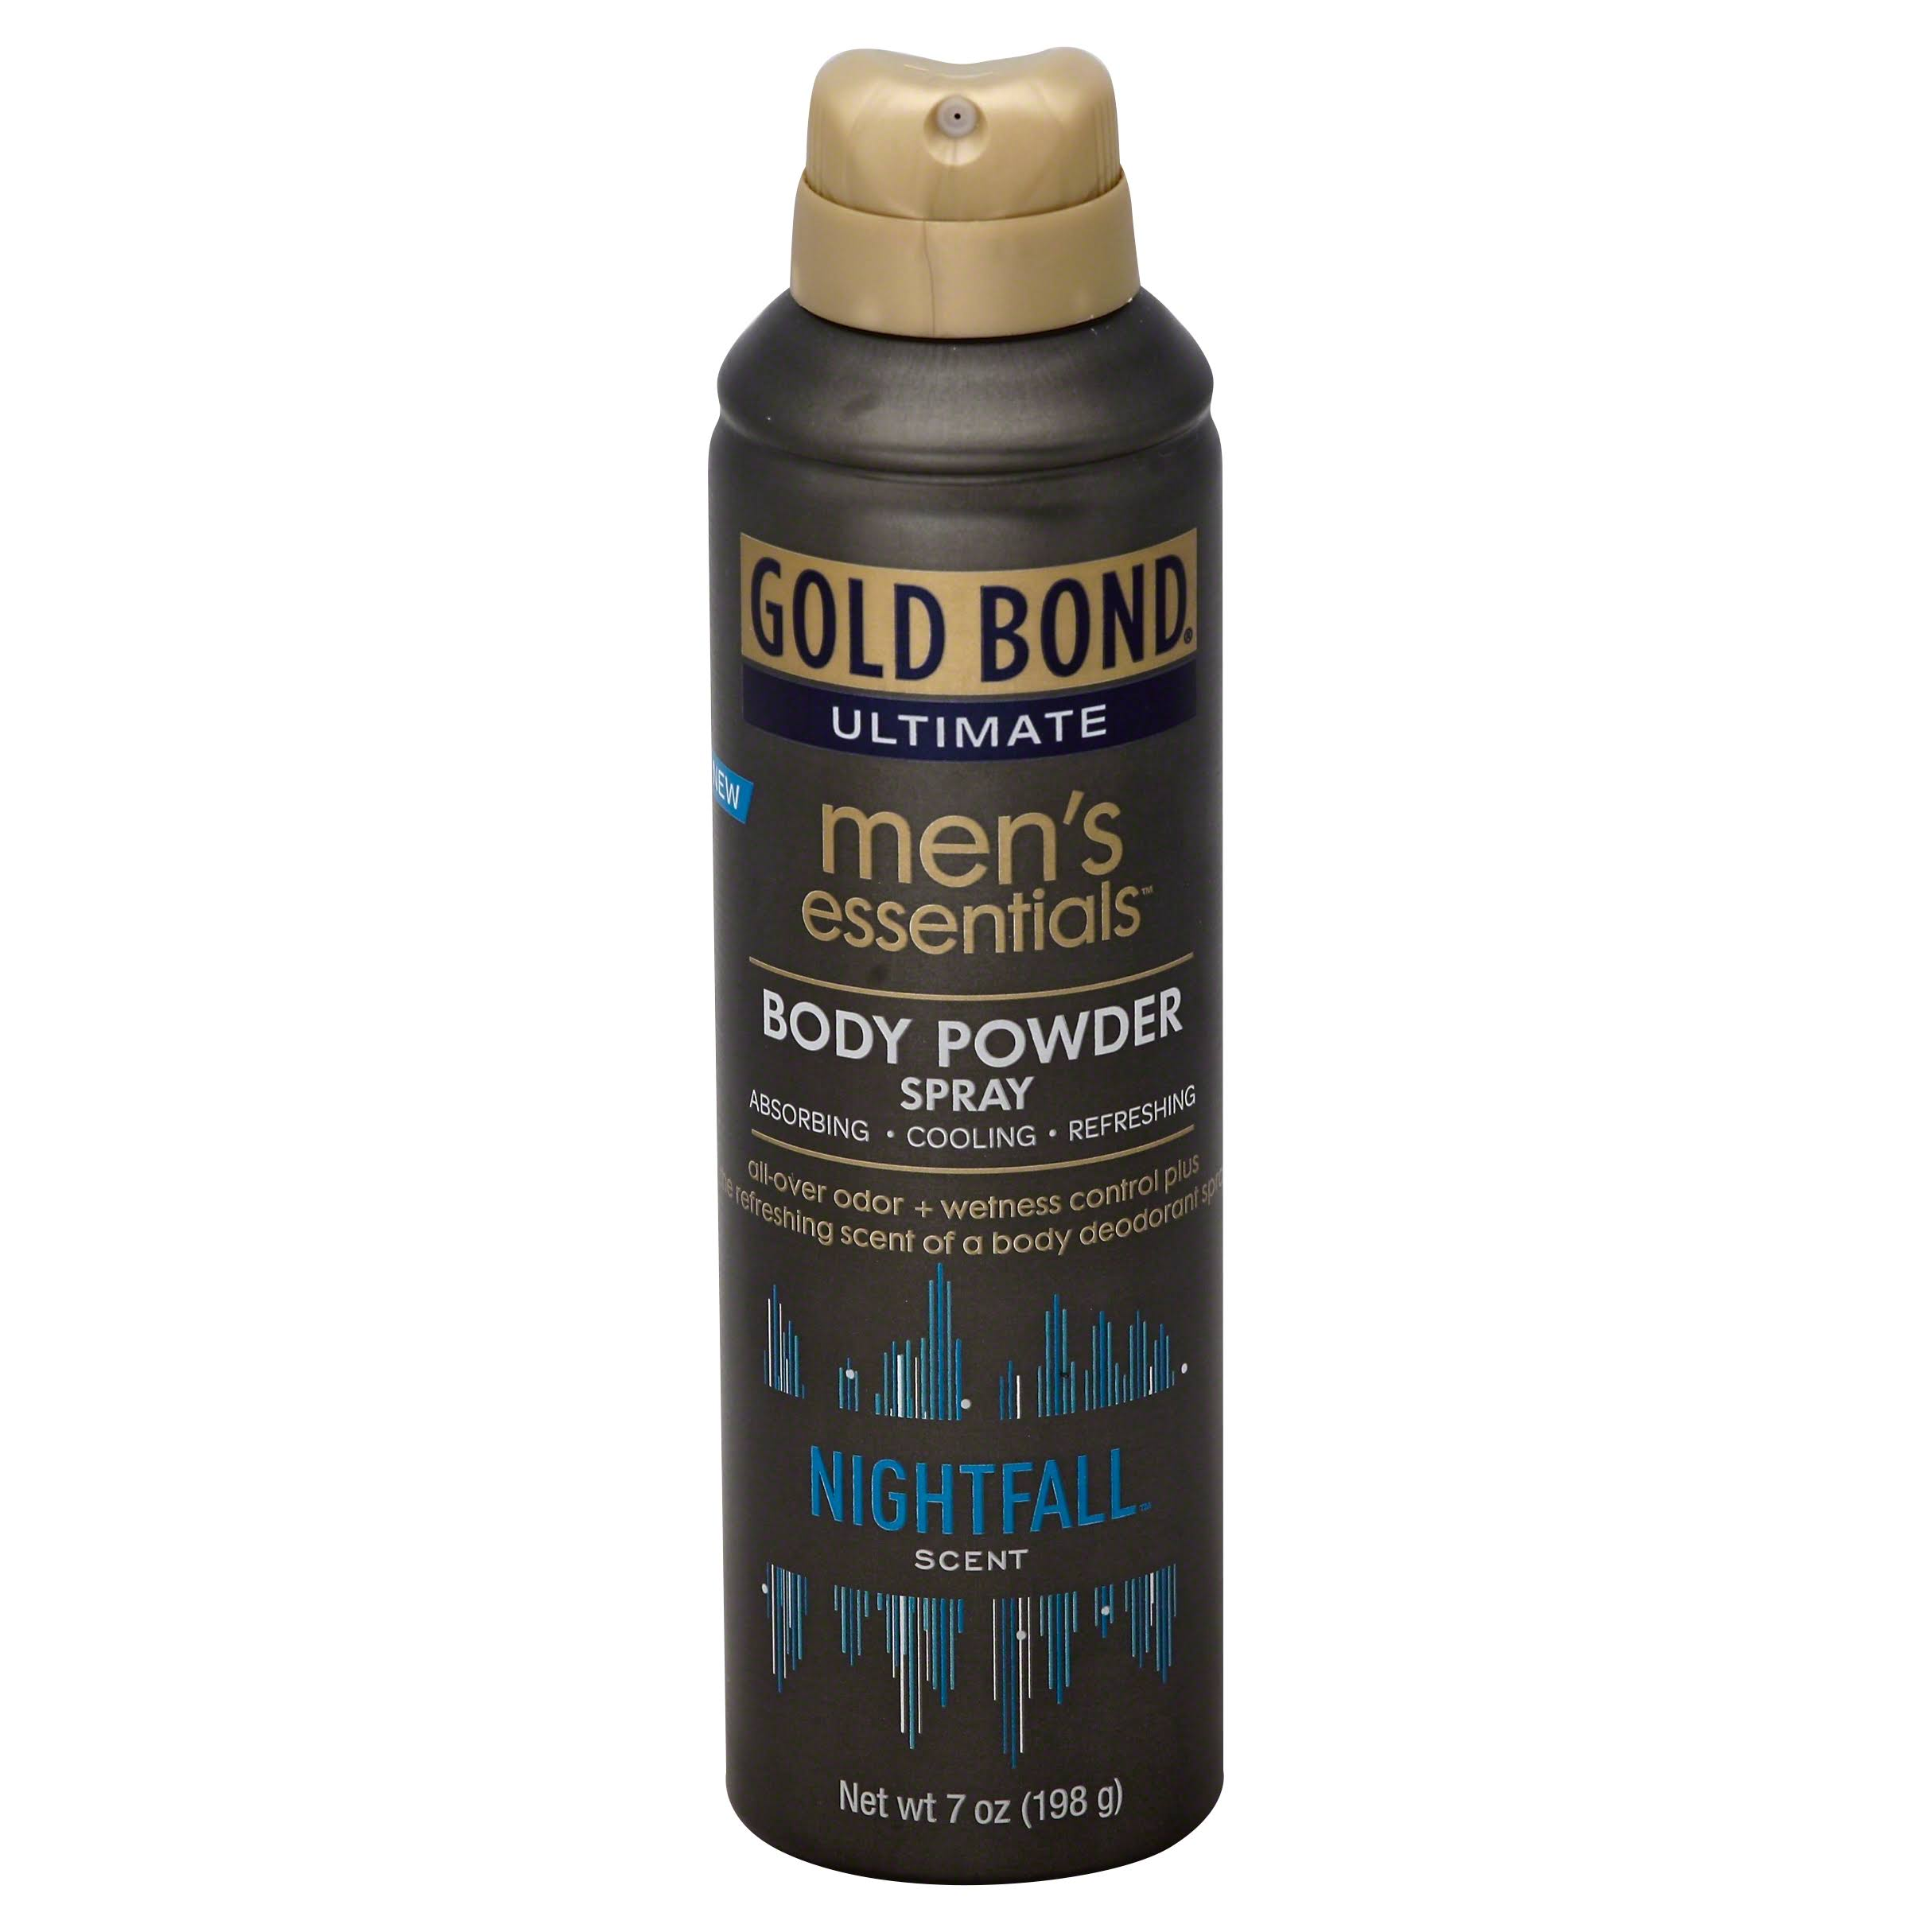 Gold Bond Ultimate Men's Essentials Nightfall Scent Body Powder Spray - 7 oz